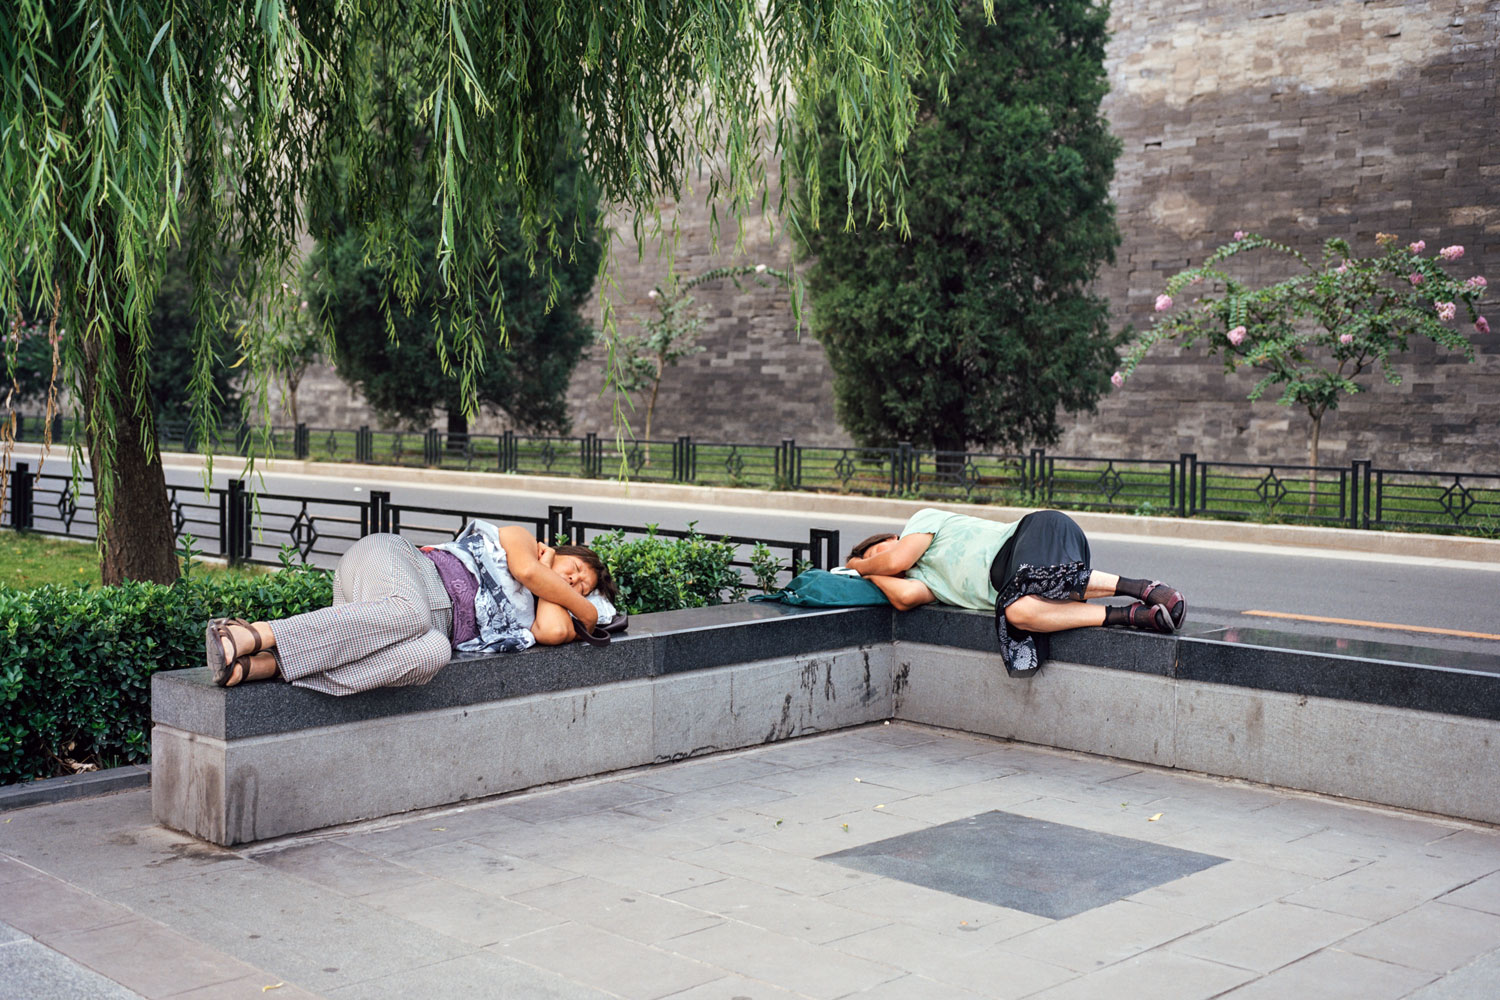 Napping outside the Forbidden City